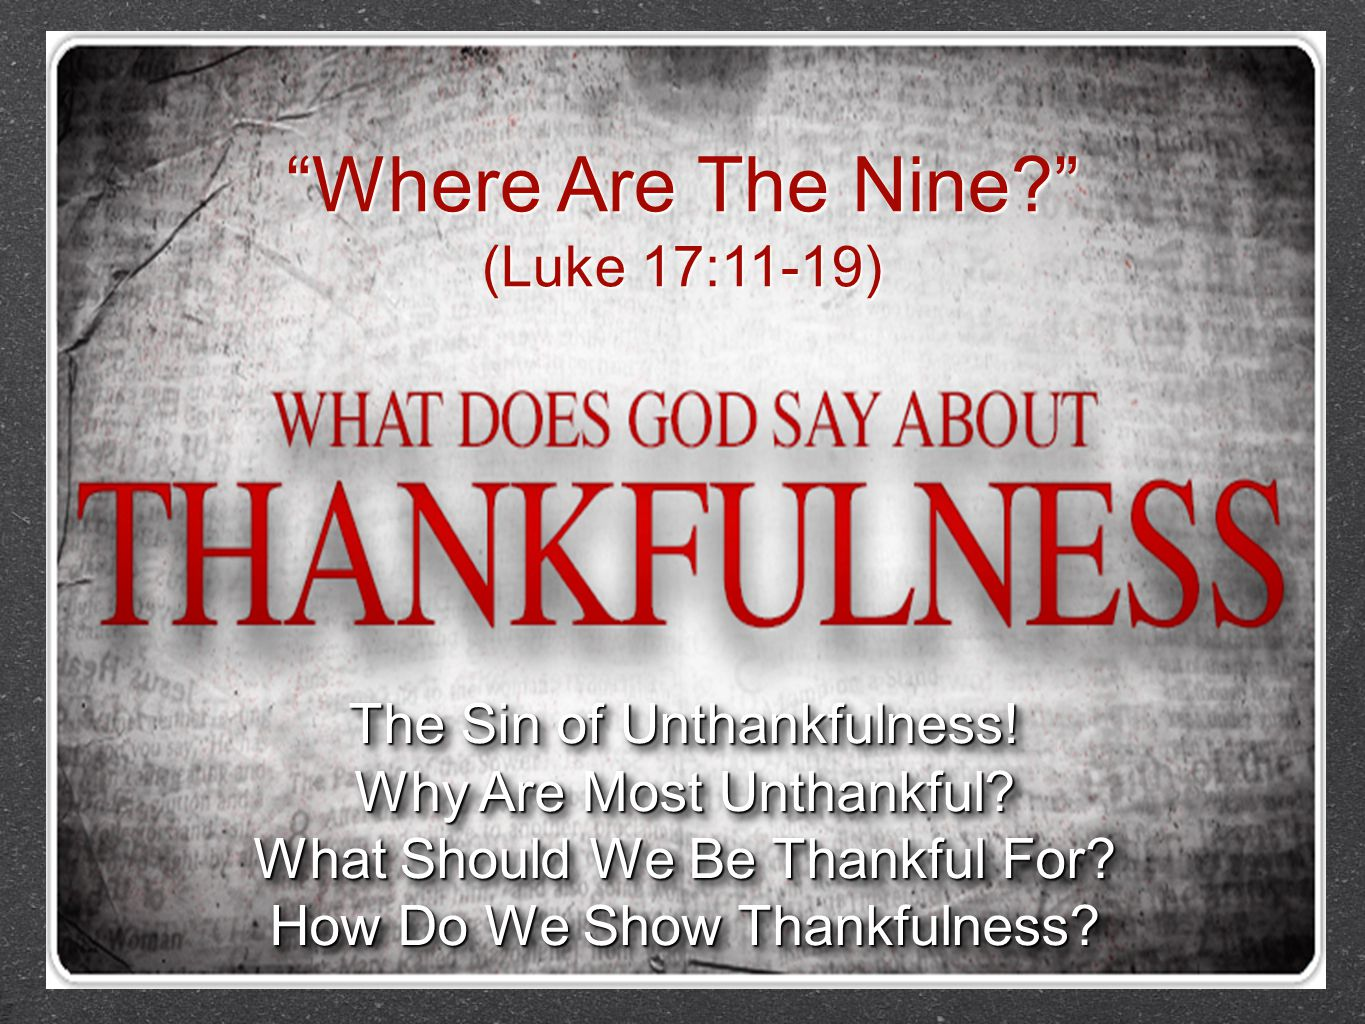 Where Are The Nine (Luke 17:11-19) The Sin of Unthankfulness!